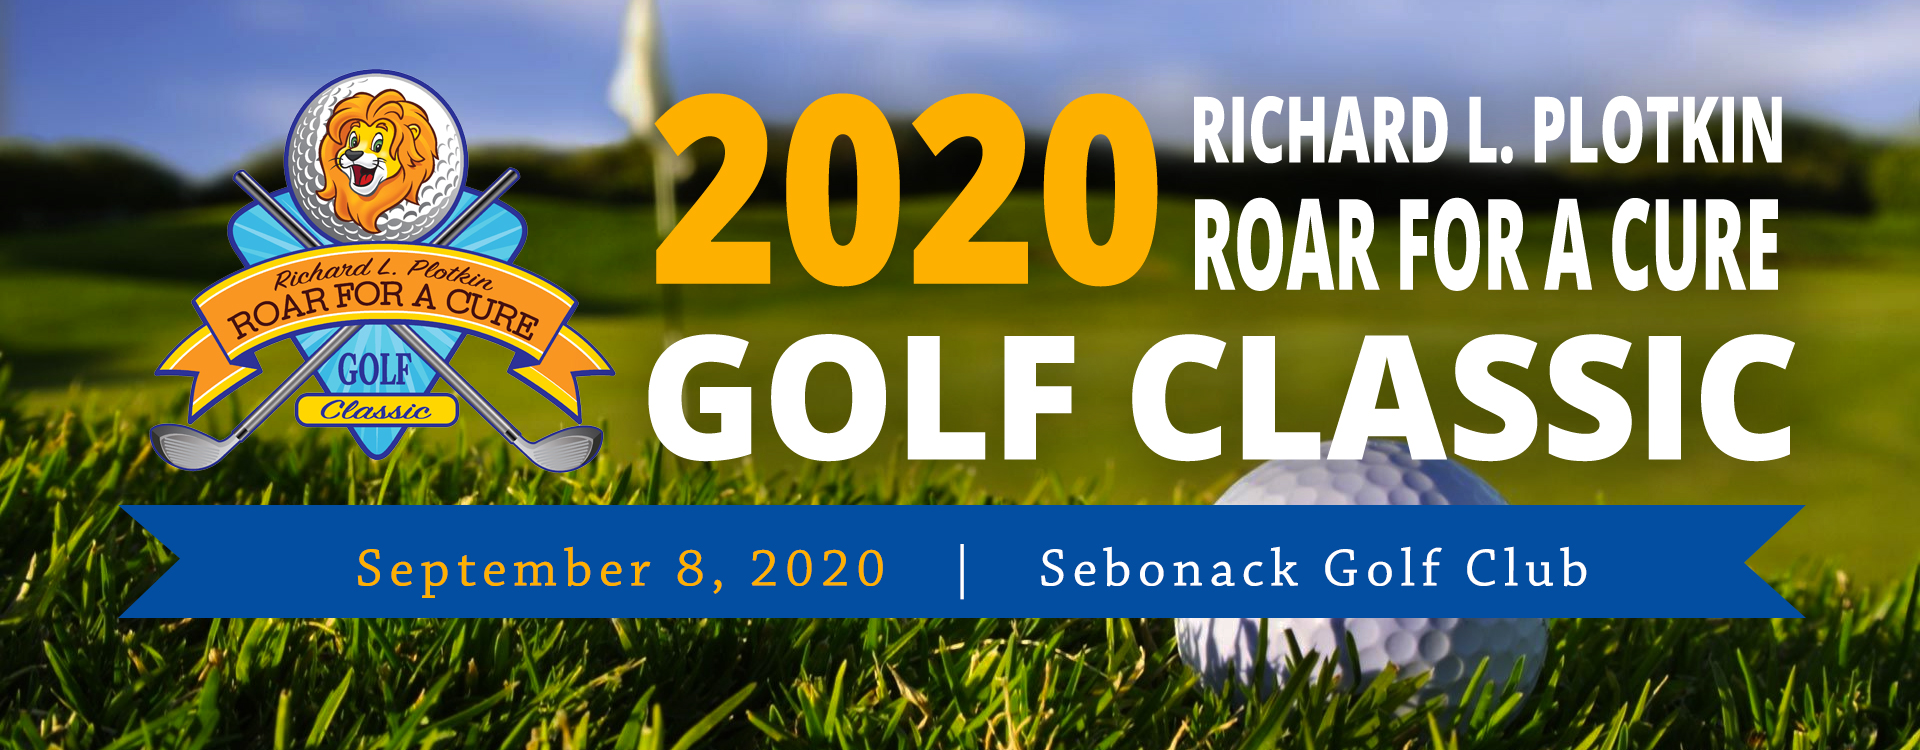 3rd Annual Richard L. Plotkin Roar For A Cure Golf Classic